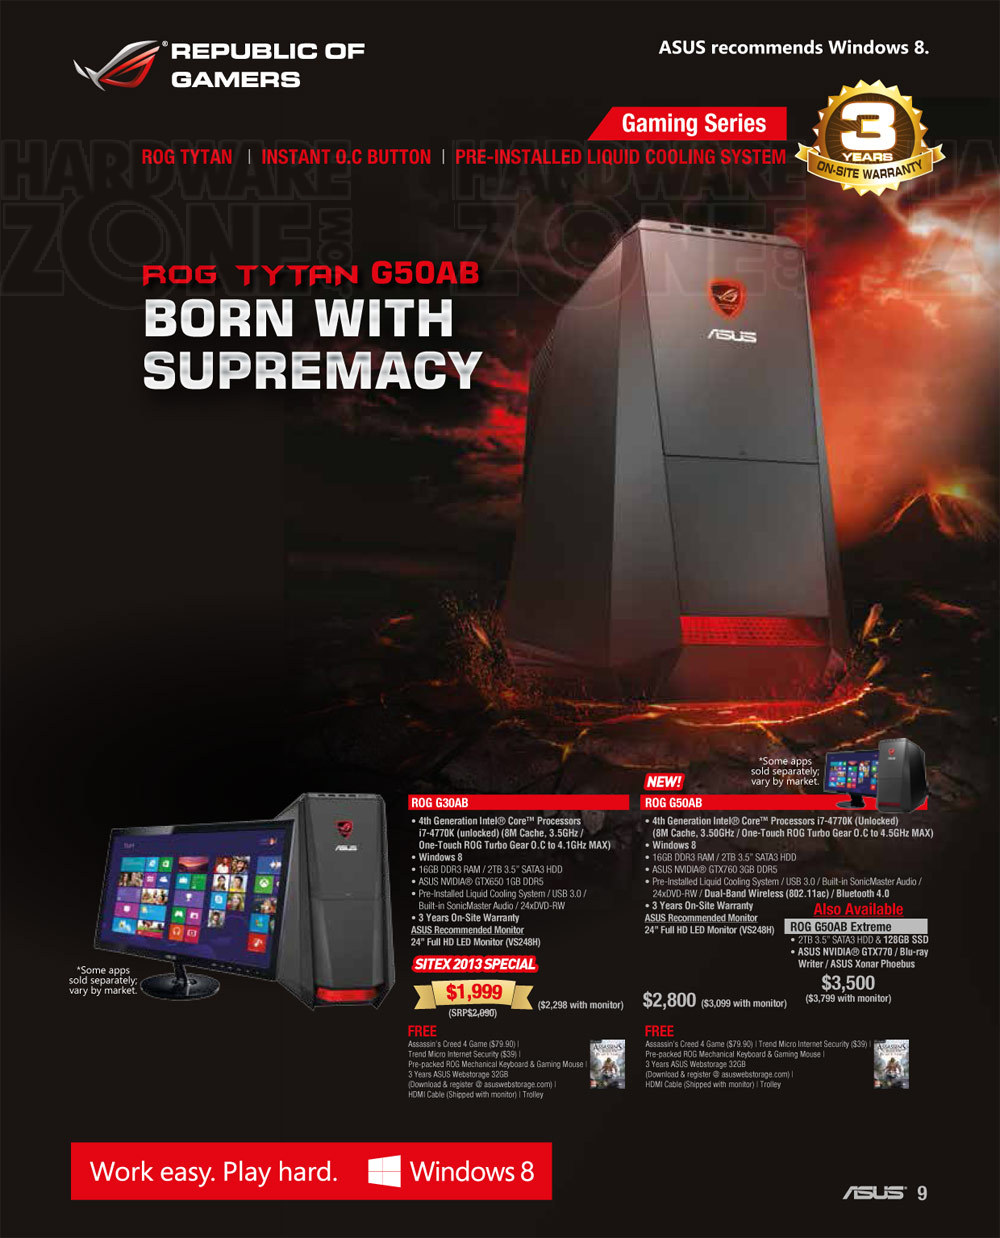 ASUS Gaming PC - page 2